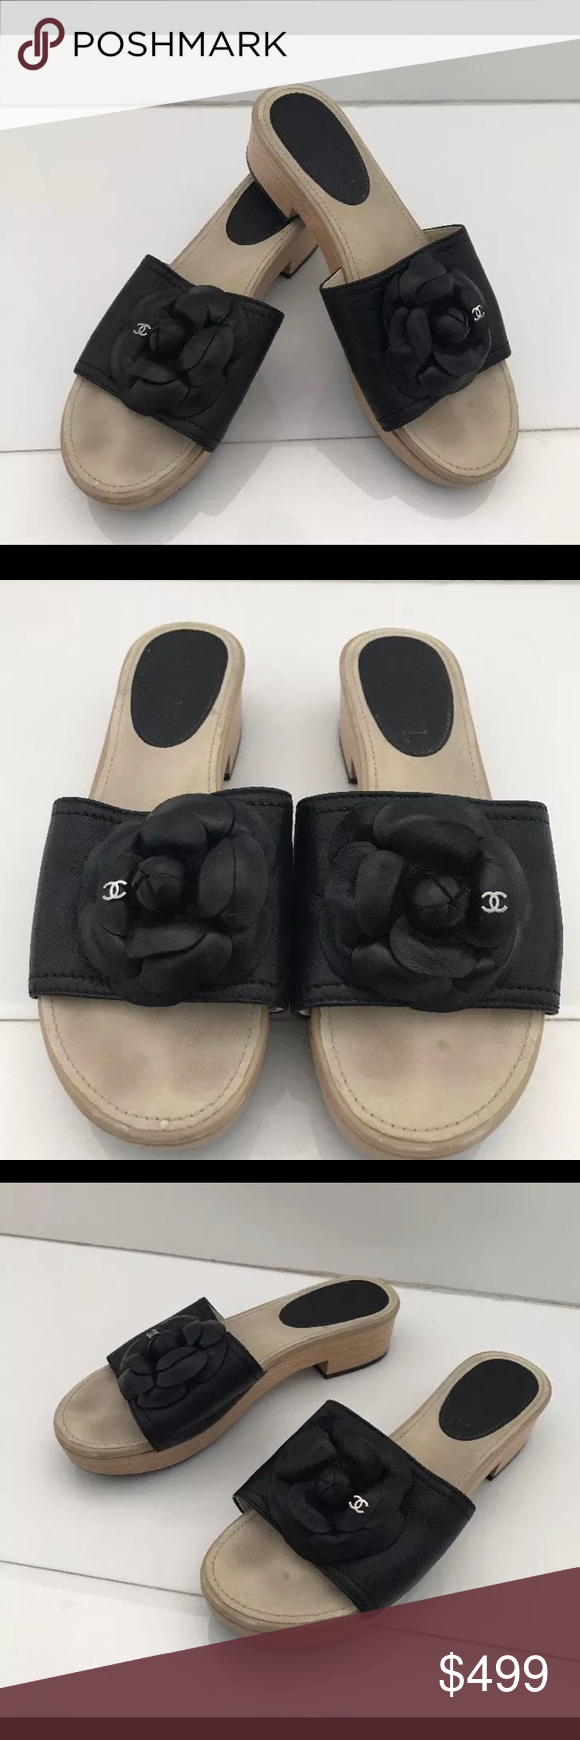 Authentic Chanel Black Camelia Clogs Size 36 6 Wow Nice Used Inside Flats Kamelia Beige 39 Condition Some Scratches On Wood Bottoms Ill Add More Detail But Great Shoes